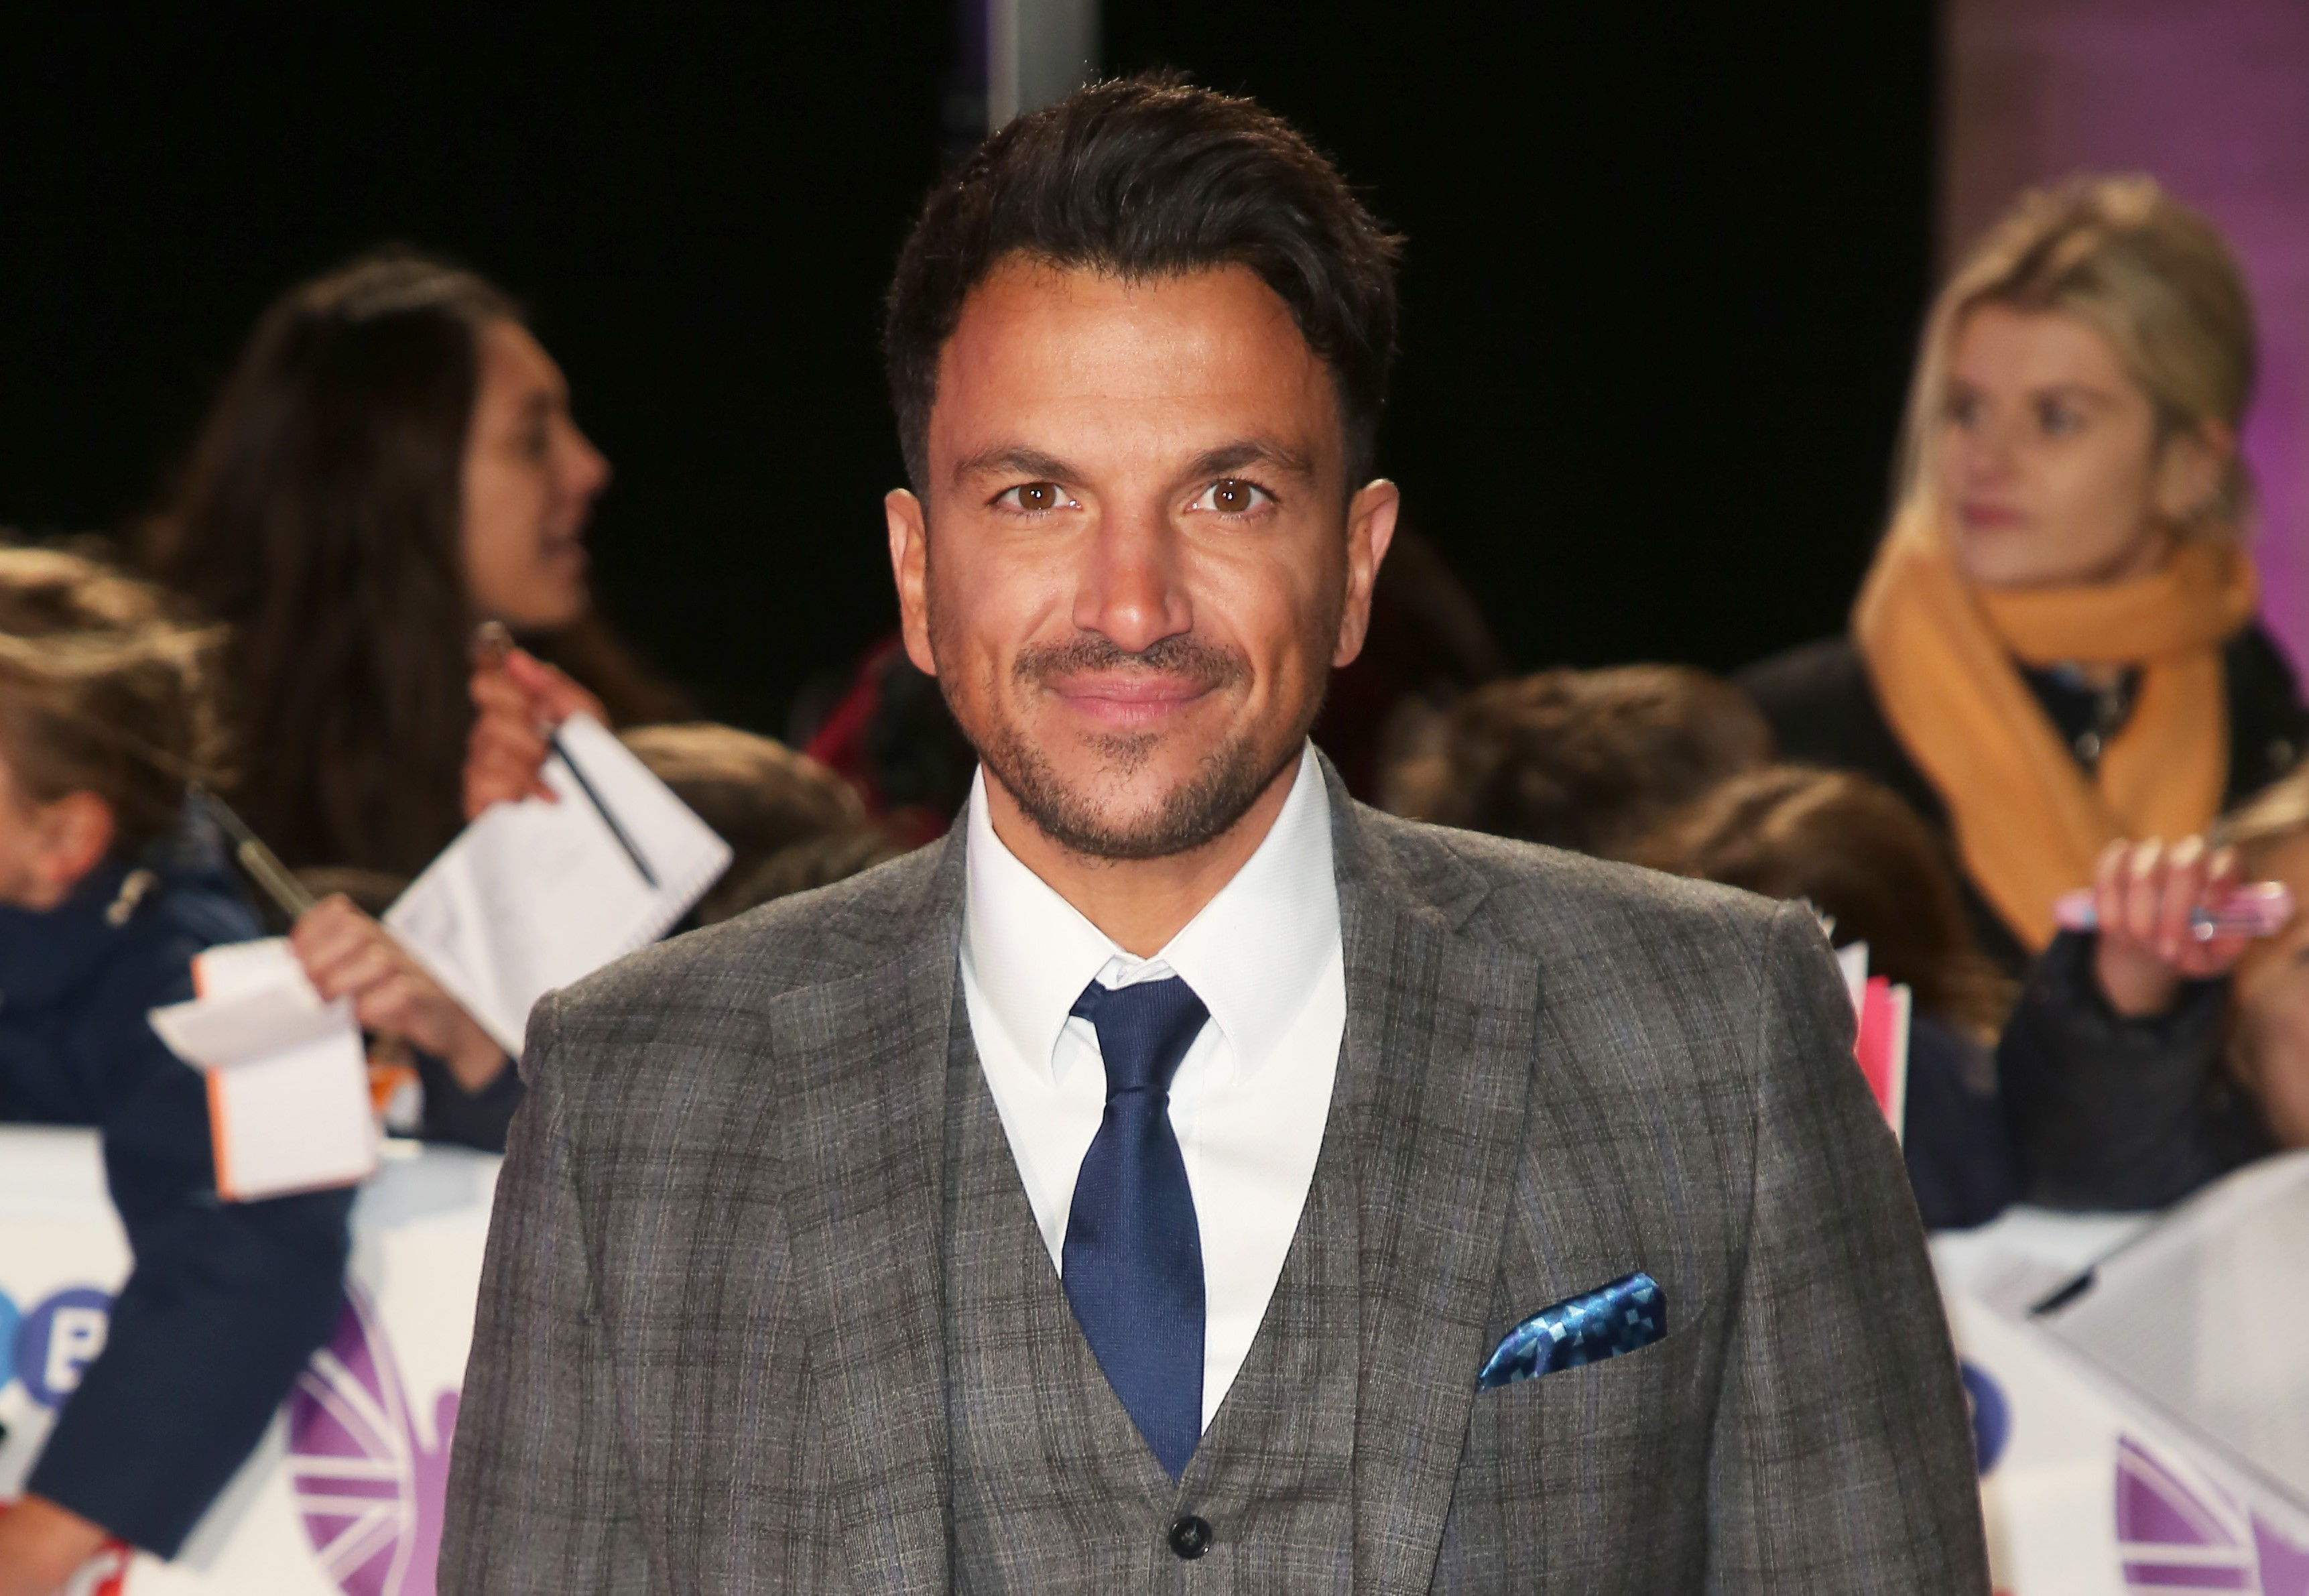 Peter Andre calls for all reality TV shows to be banned